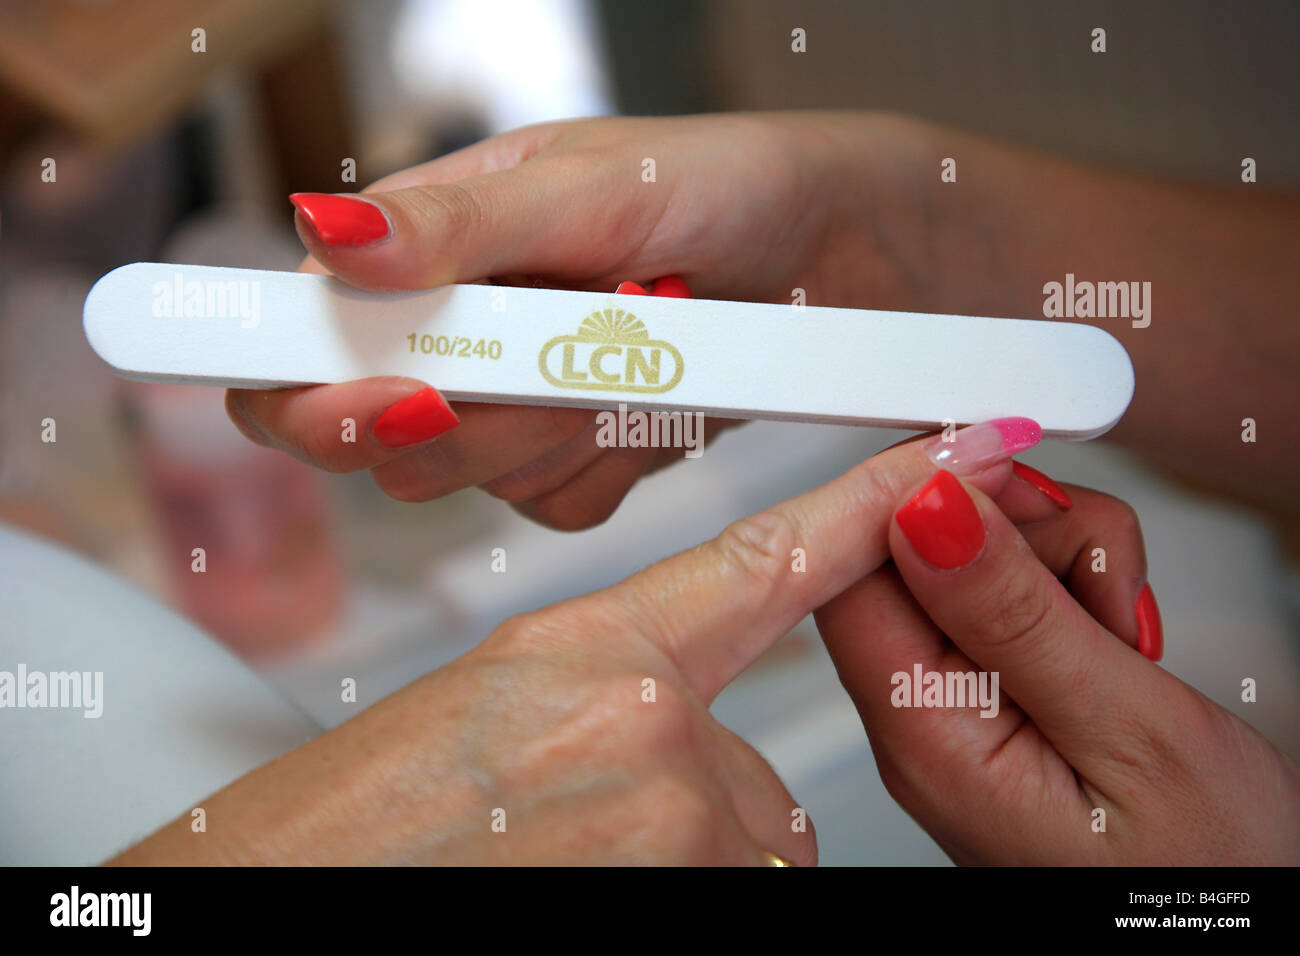 Manicure filing a Ladys Nails with a Nailfile in a Trendy High ...